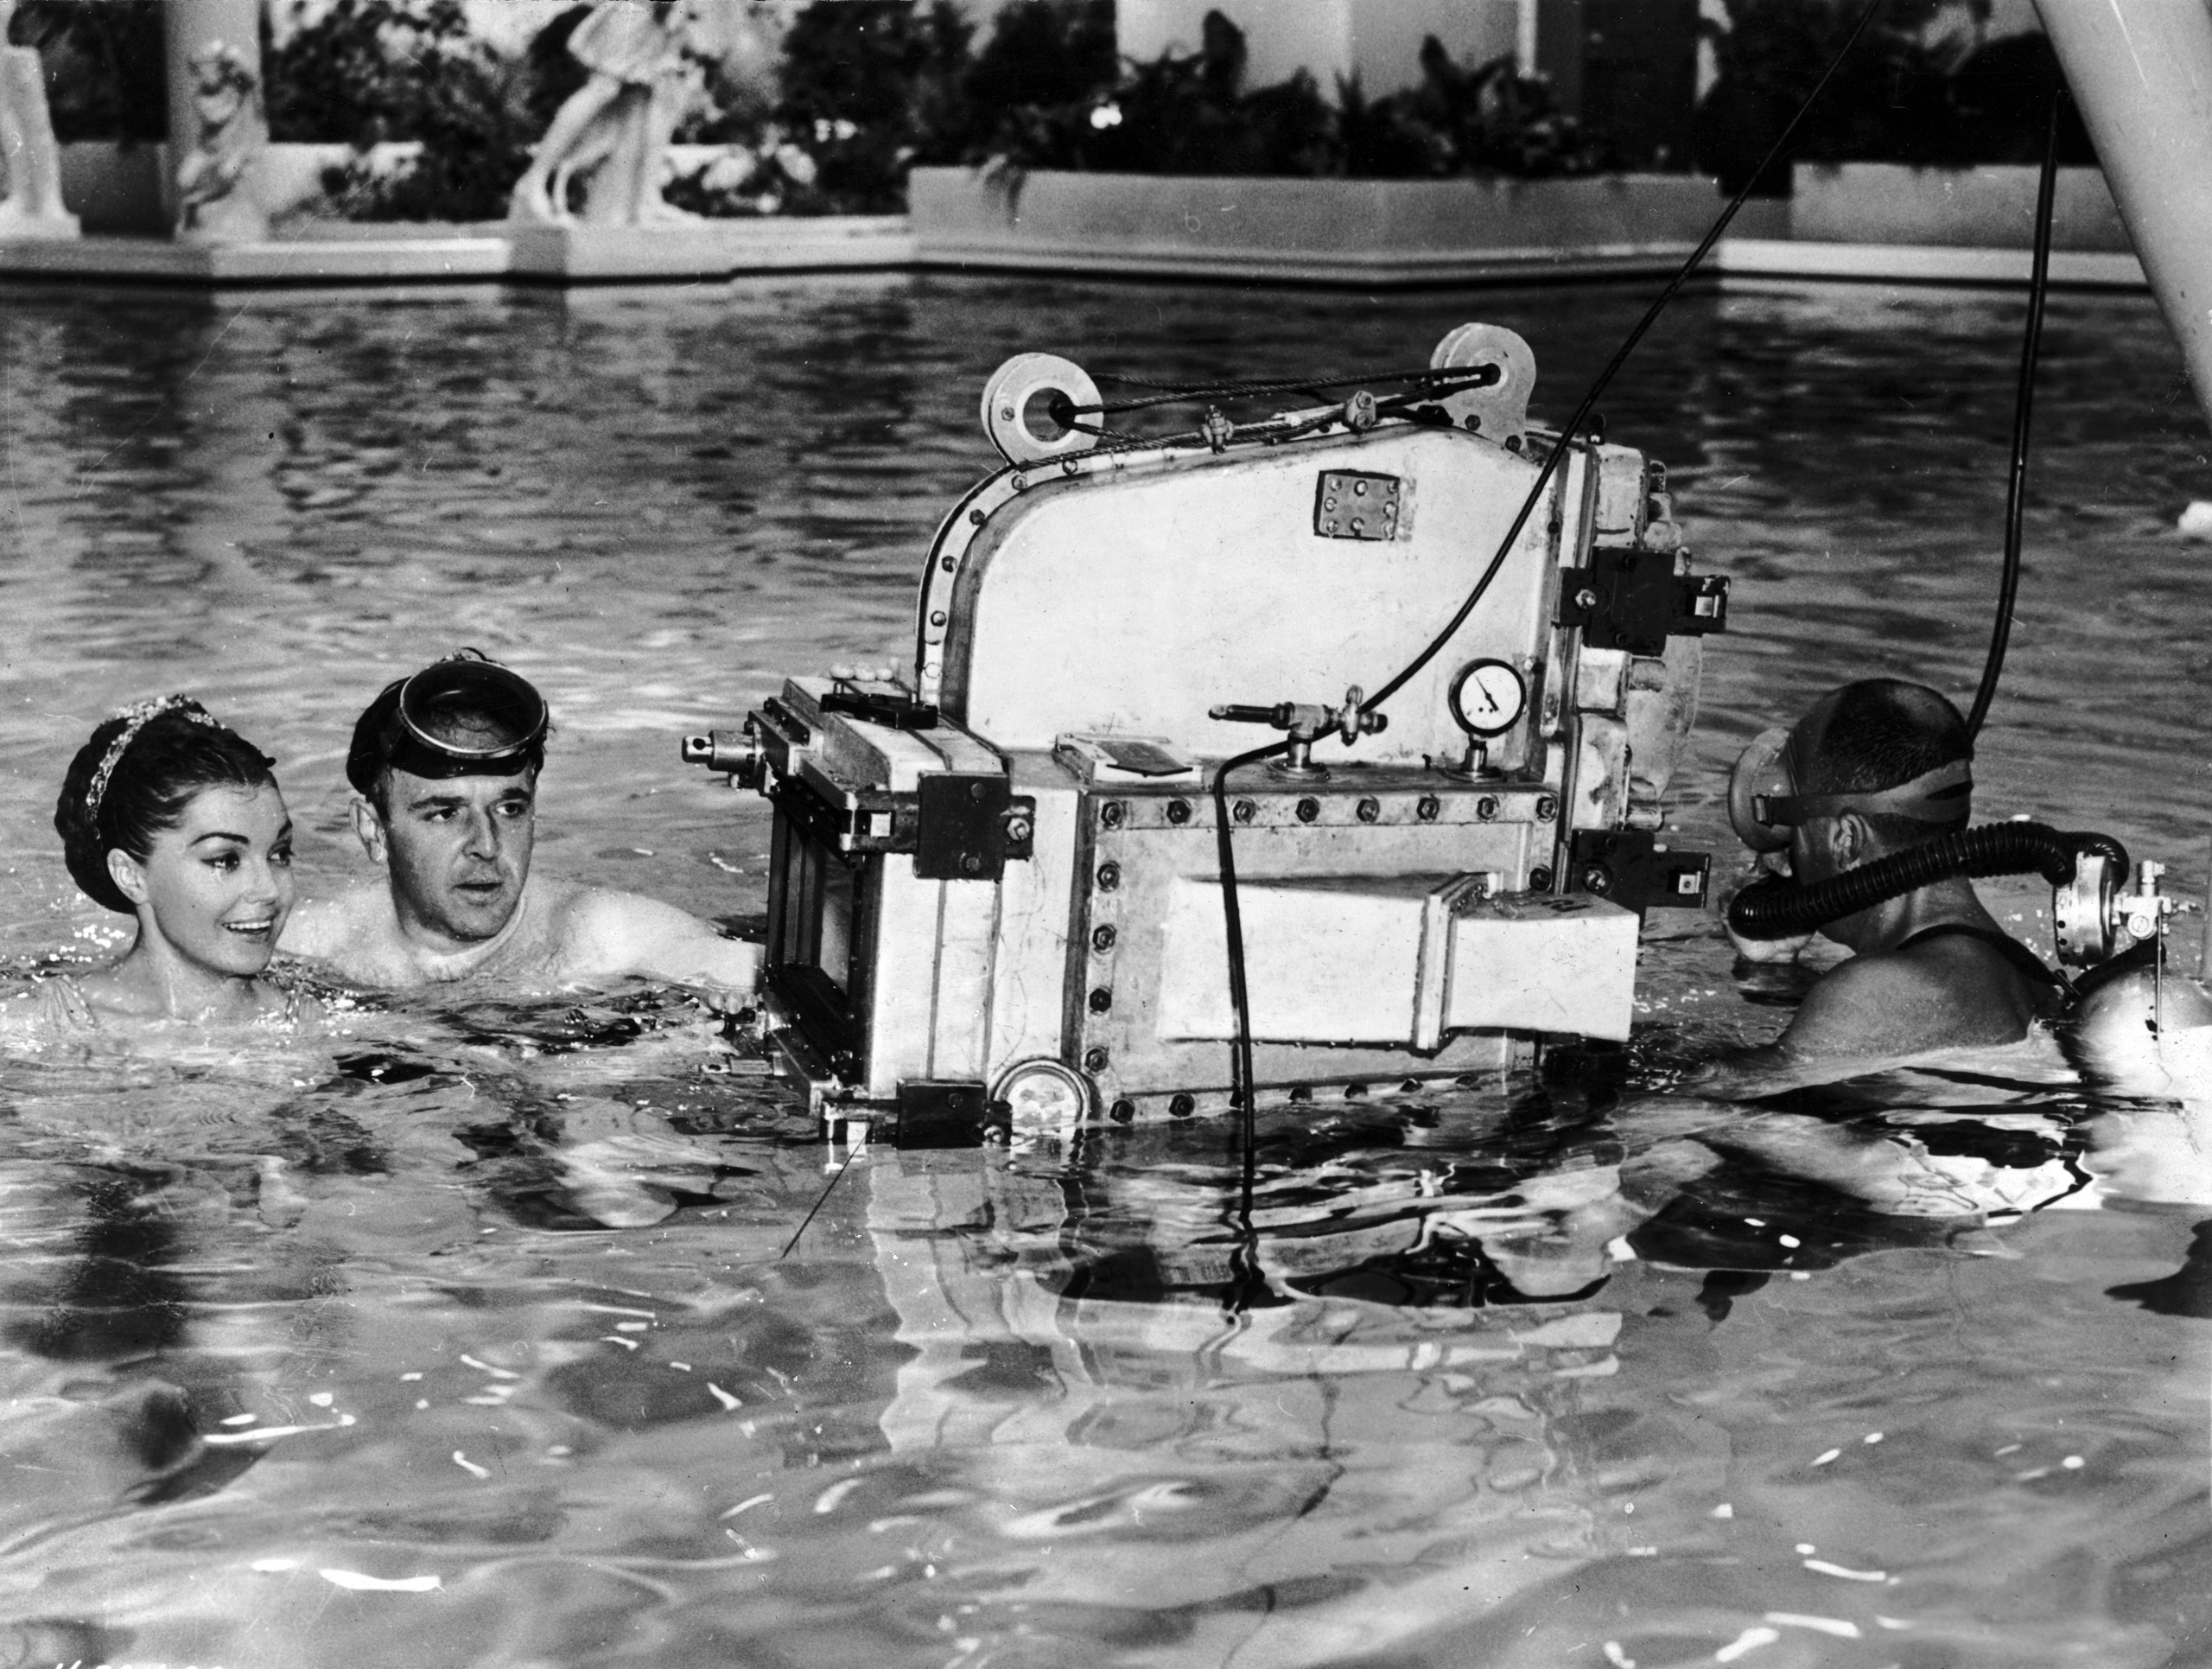 George Sidney wears a diving mask while directing American swimmer and actor Esther Williams in a swimming pool on the set of his film, 'Jupiter's Darling'. The camera man is wearing scuba apparatus. 1955.